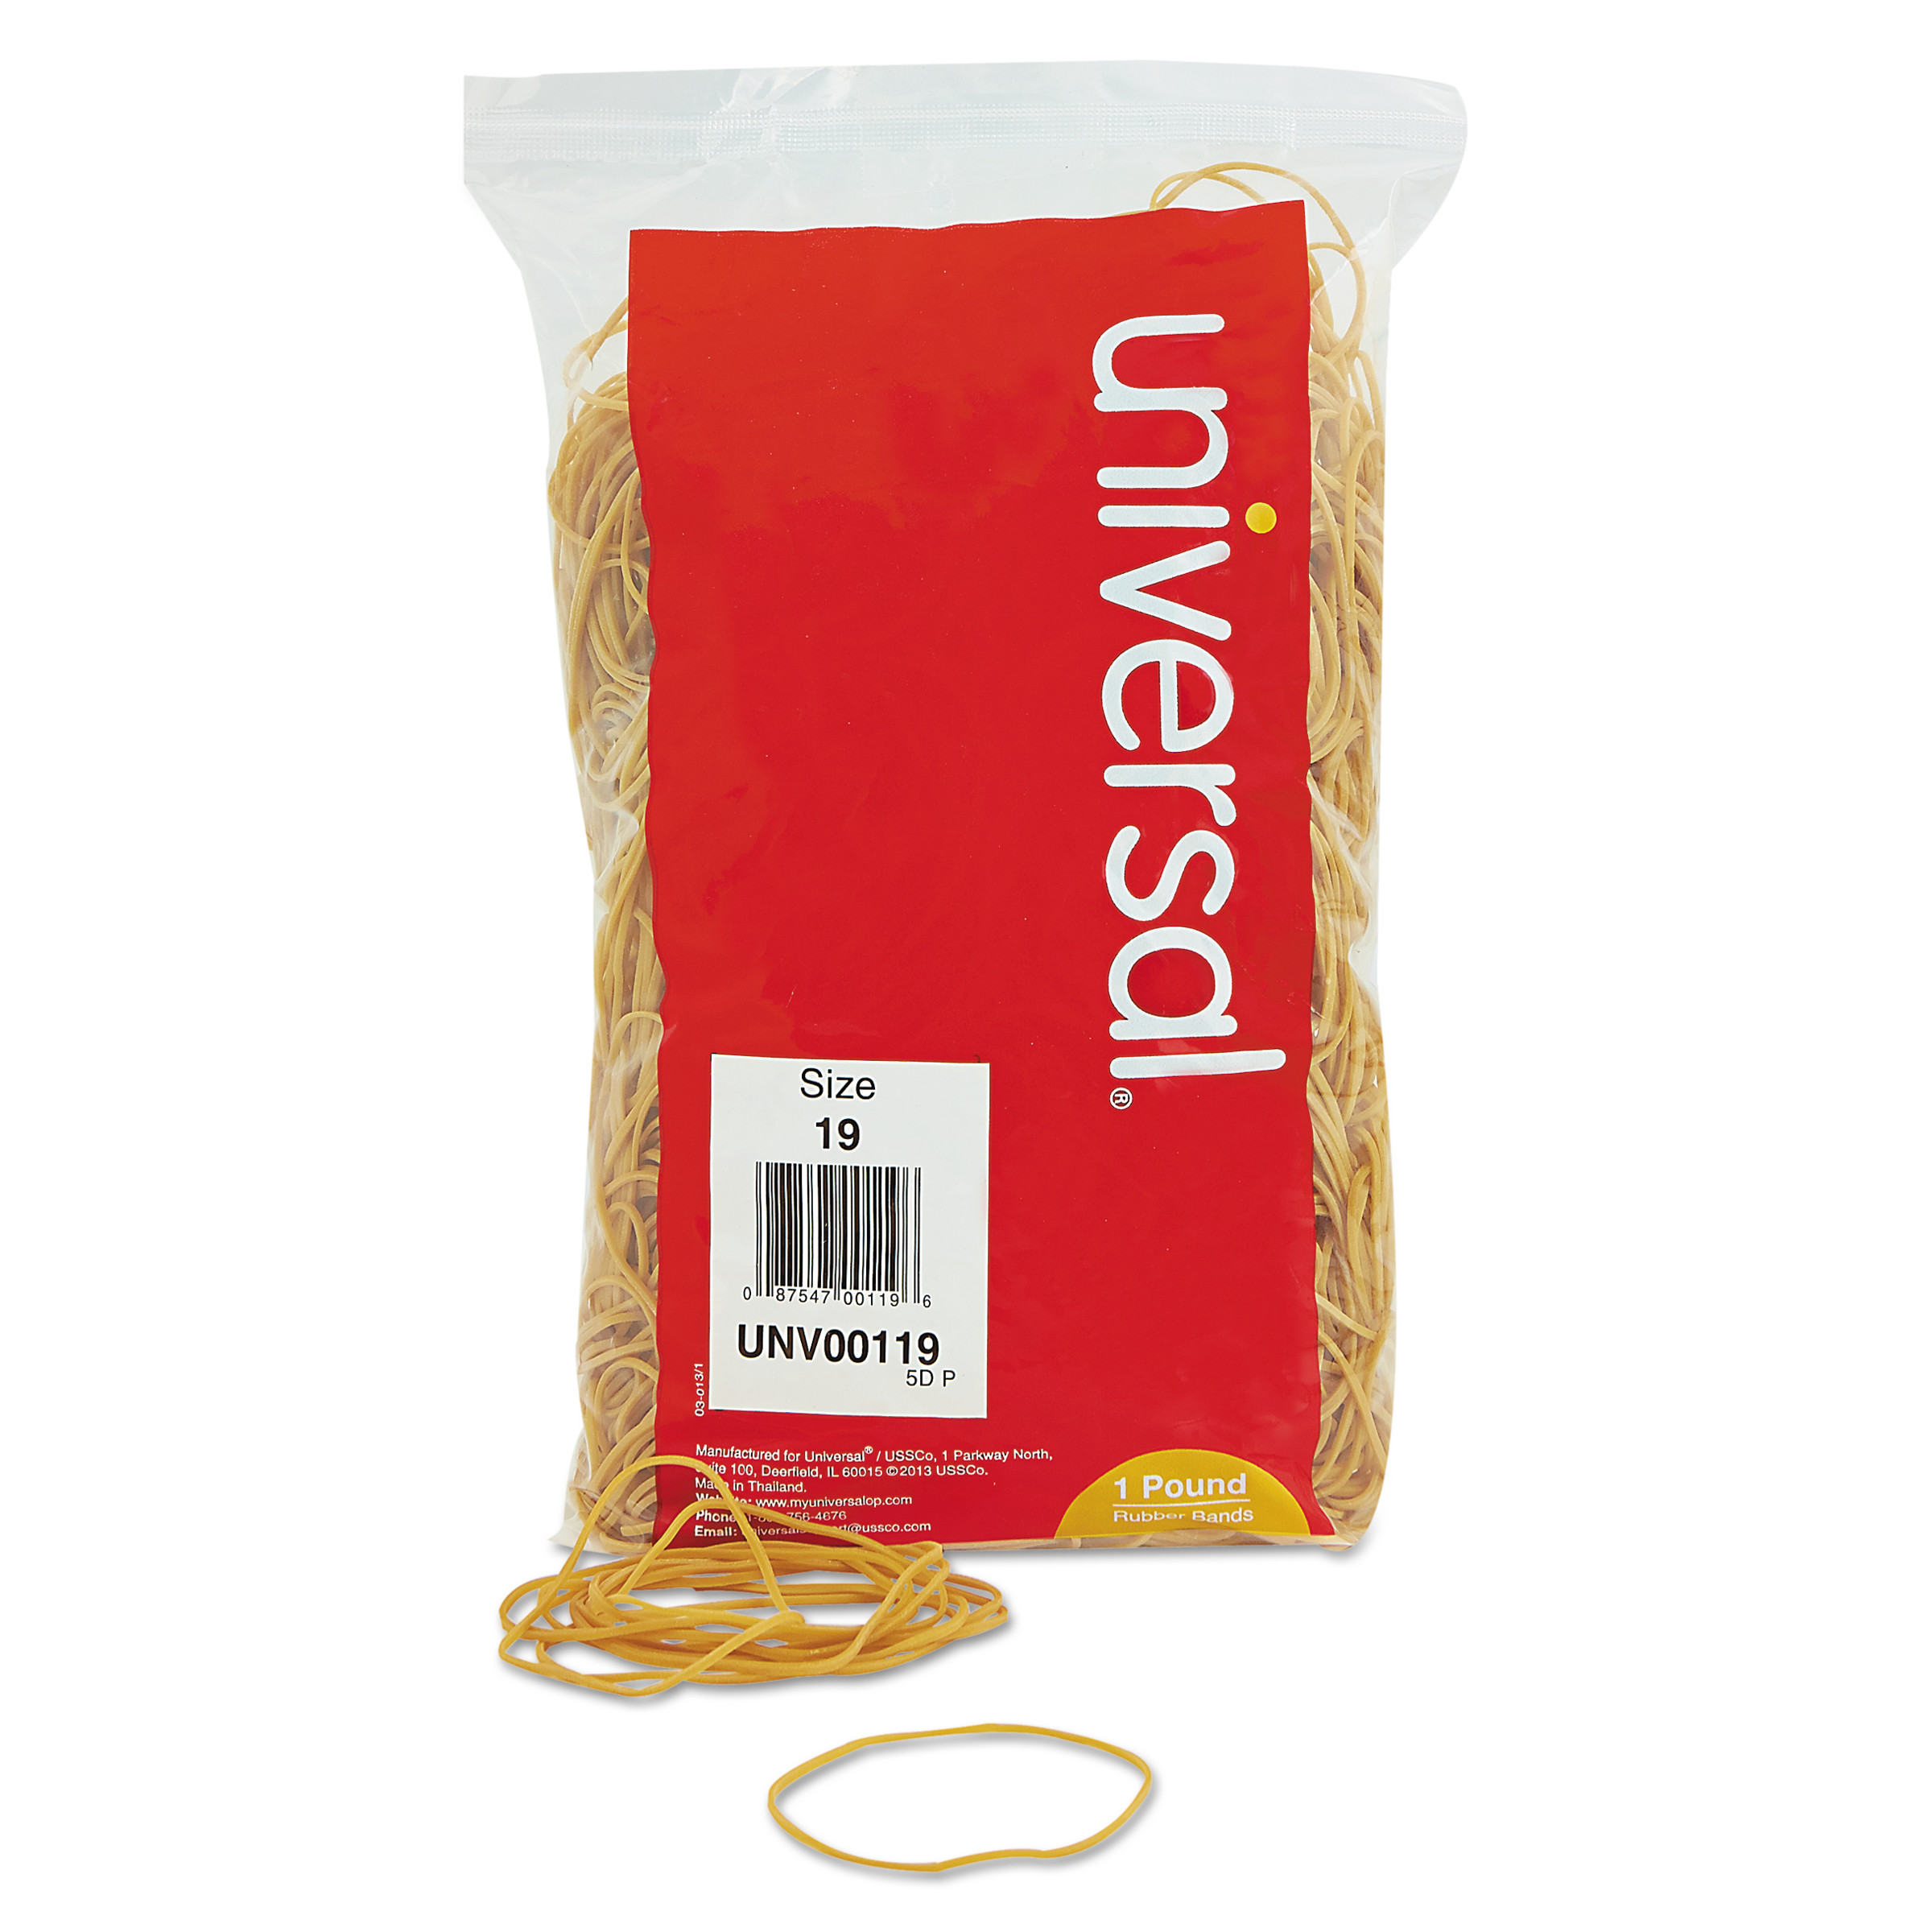 Universal Rubber Bands, Size 19, 3-1/2 x 1/16, 1240 Bands/1lb Pack